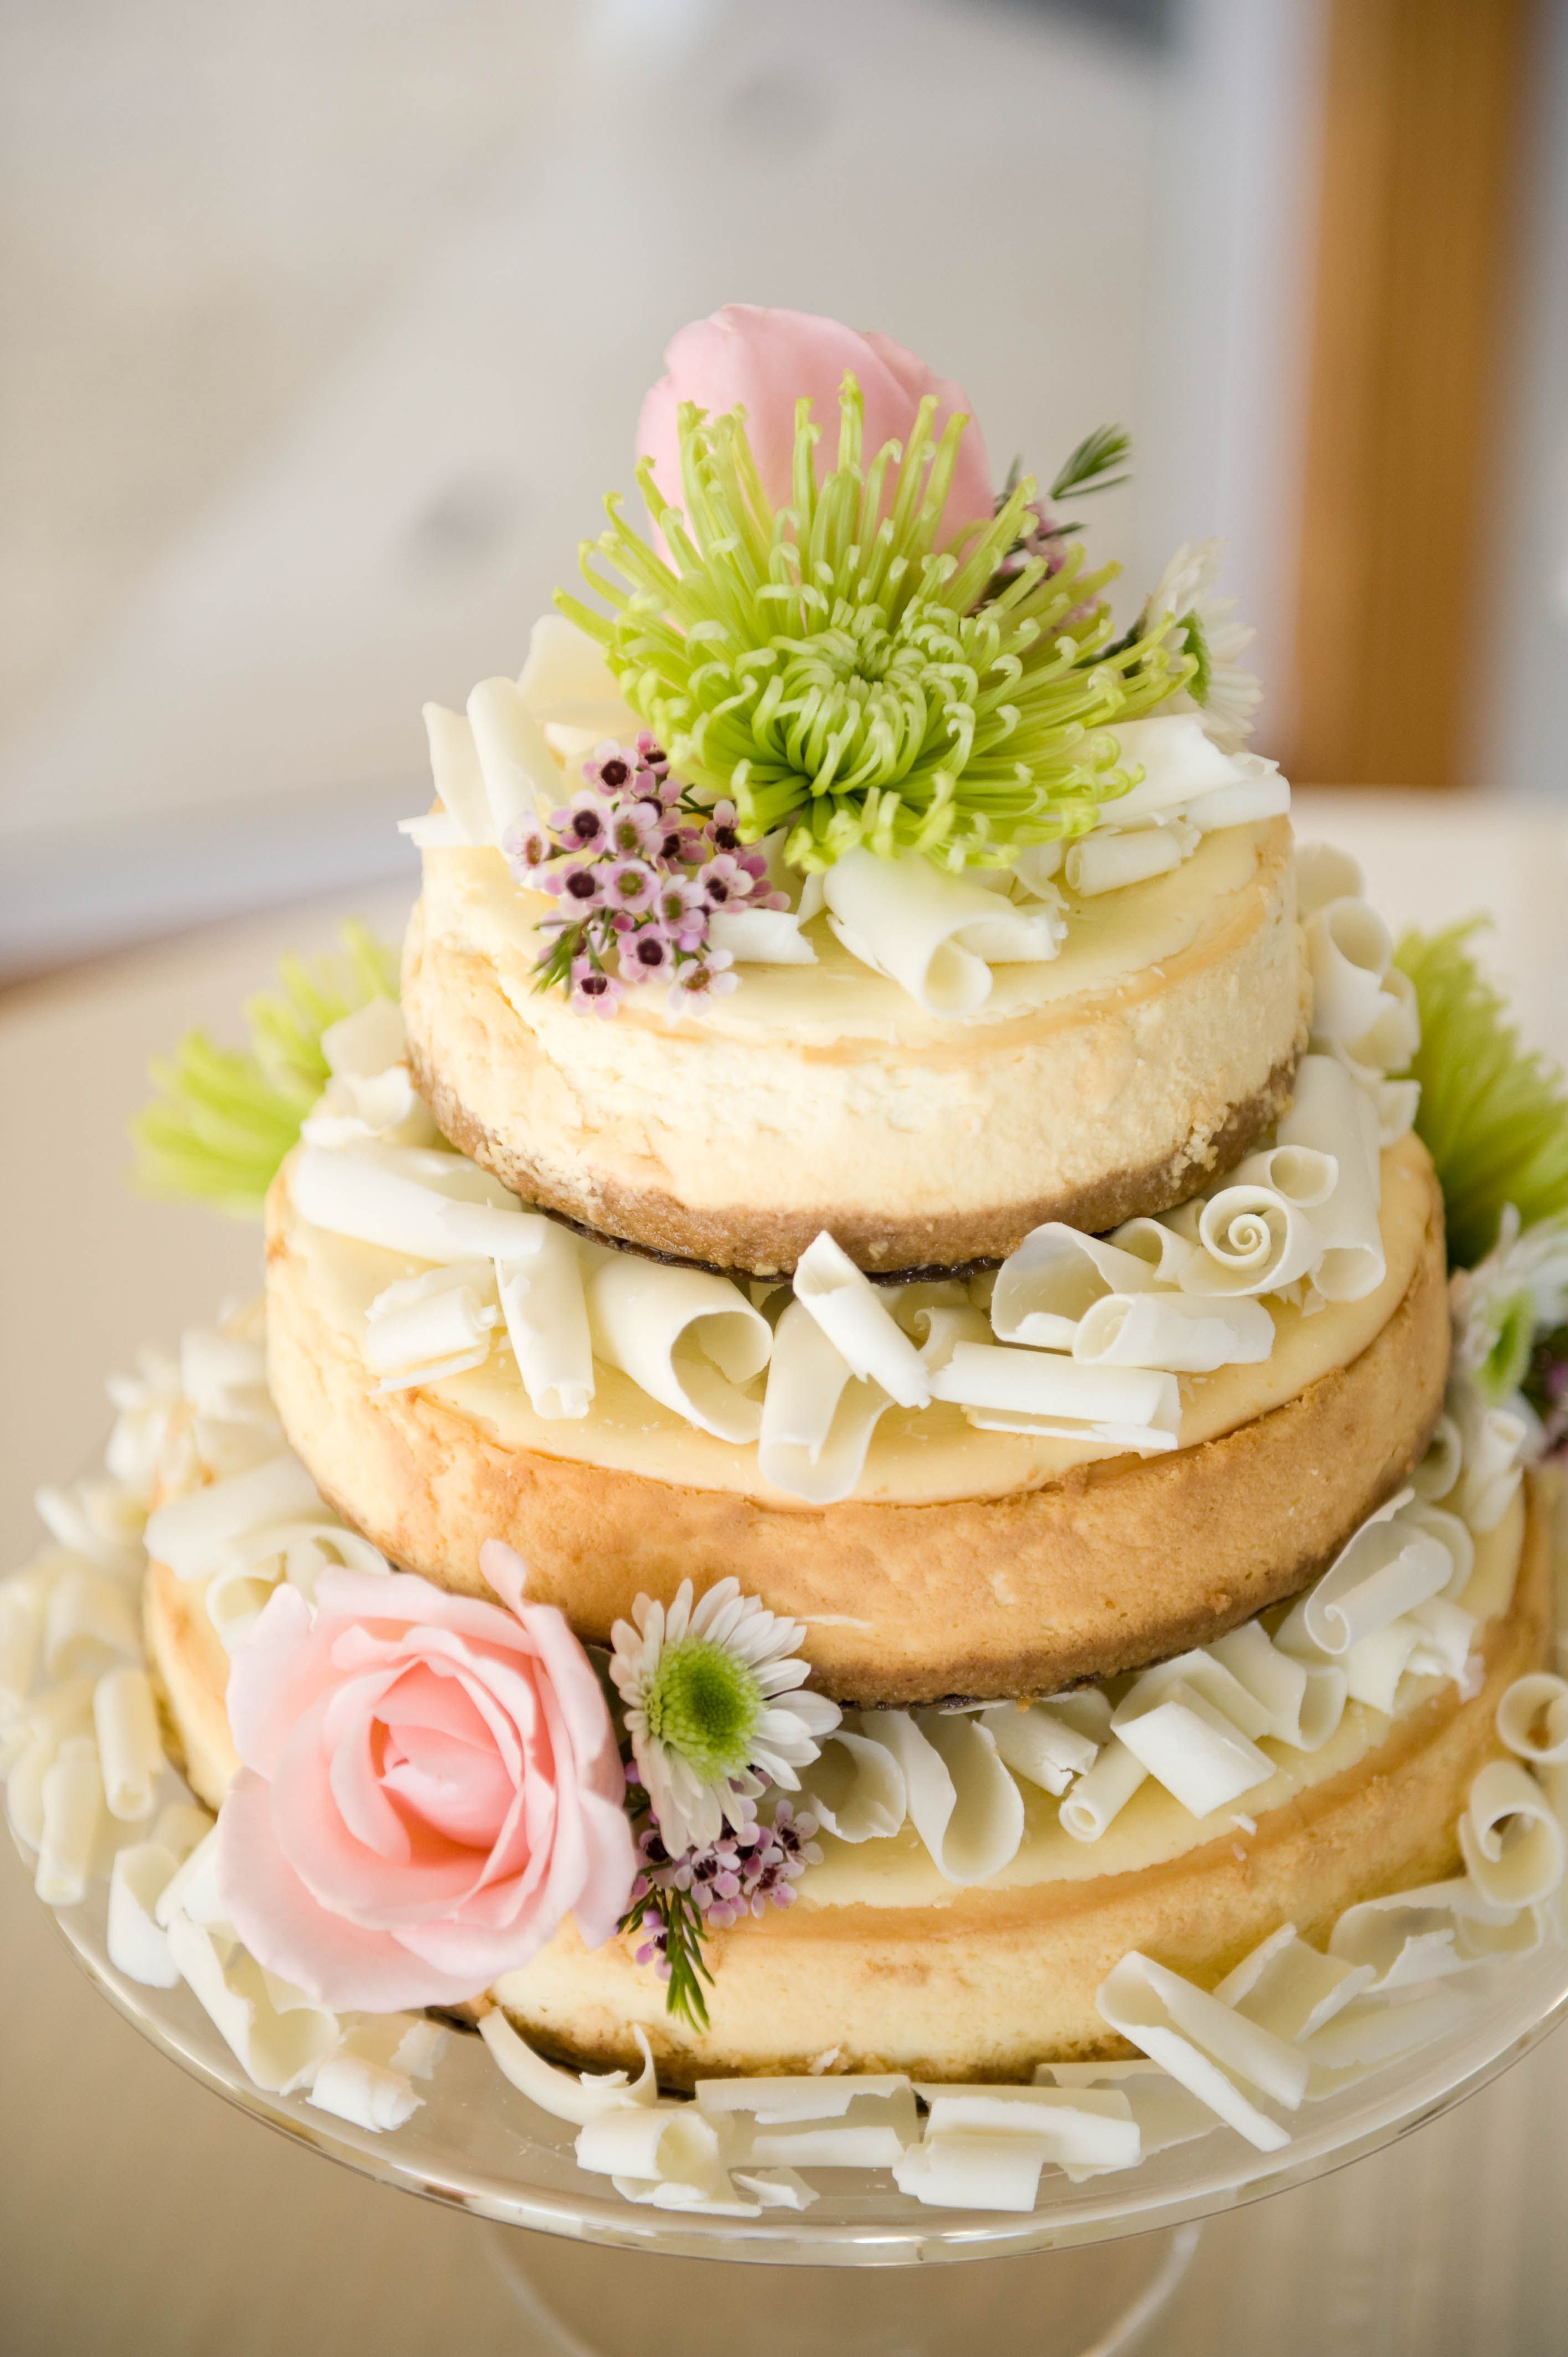 A wedding cake! Cheese cake with white chocolate swirls. Beautiful ...